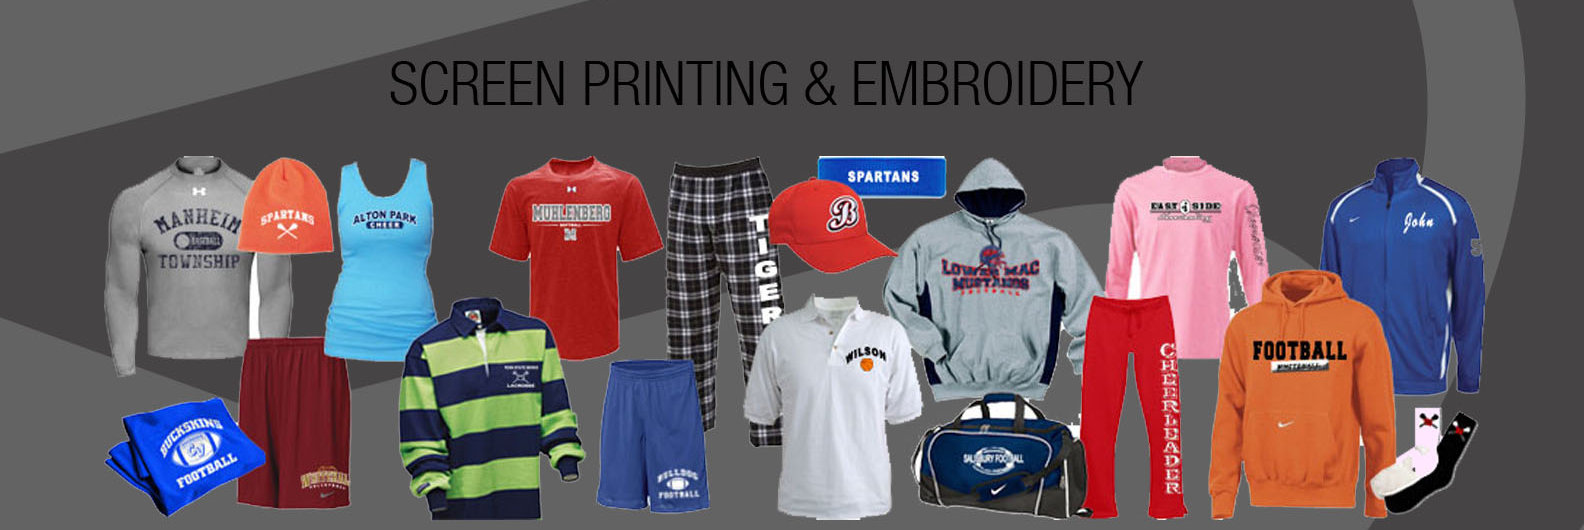 DboGraphicsscreen printing & embroidery.